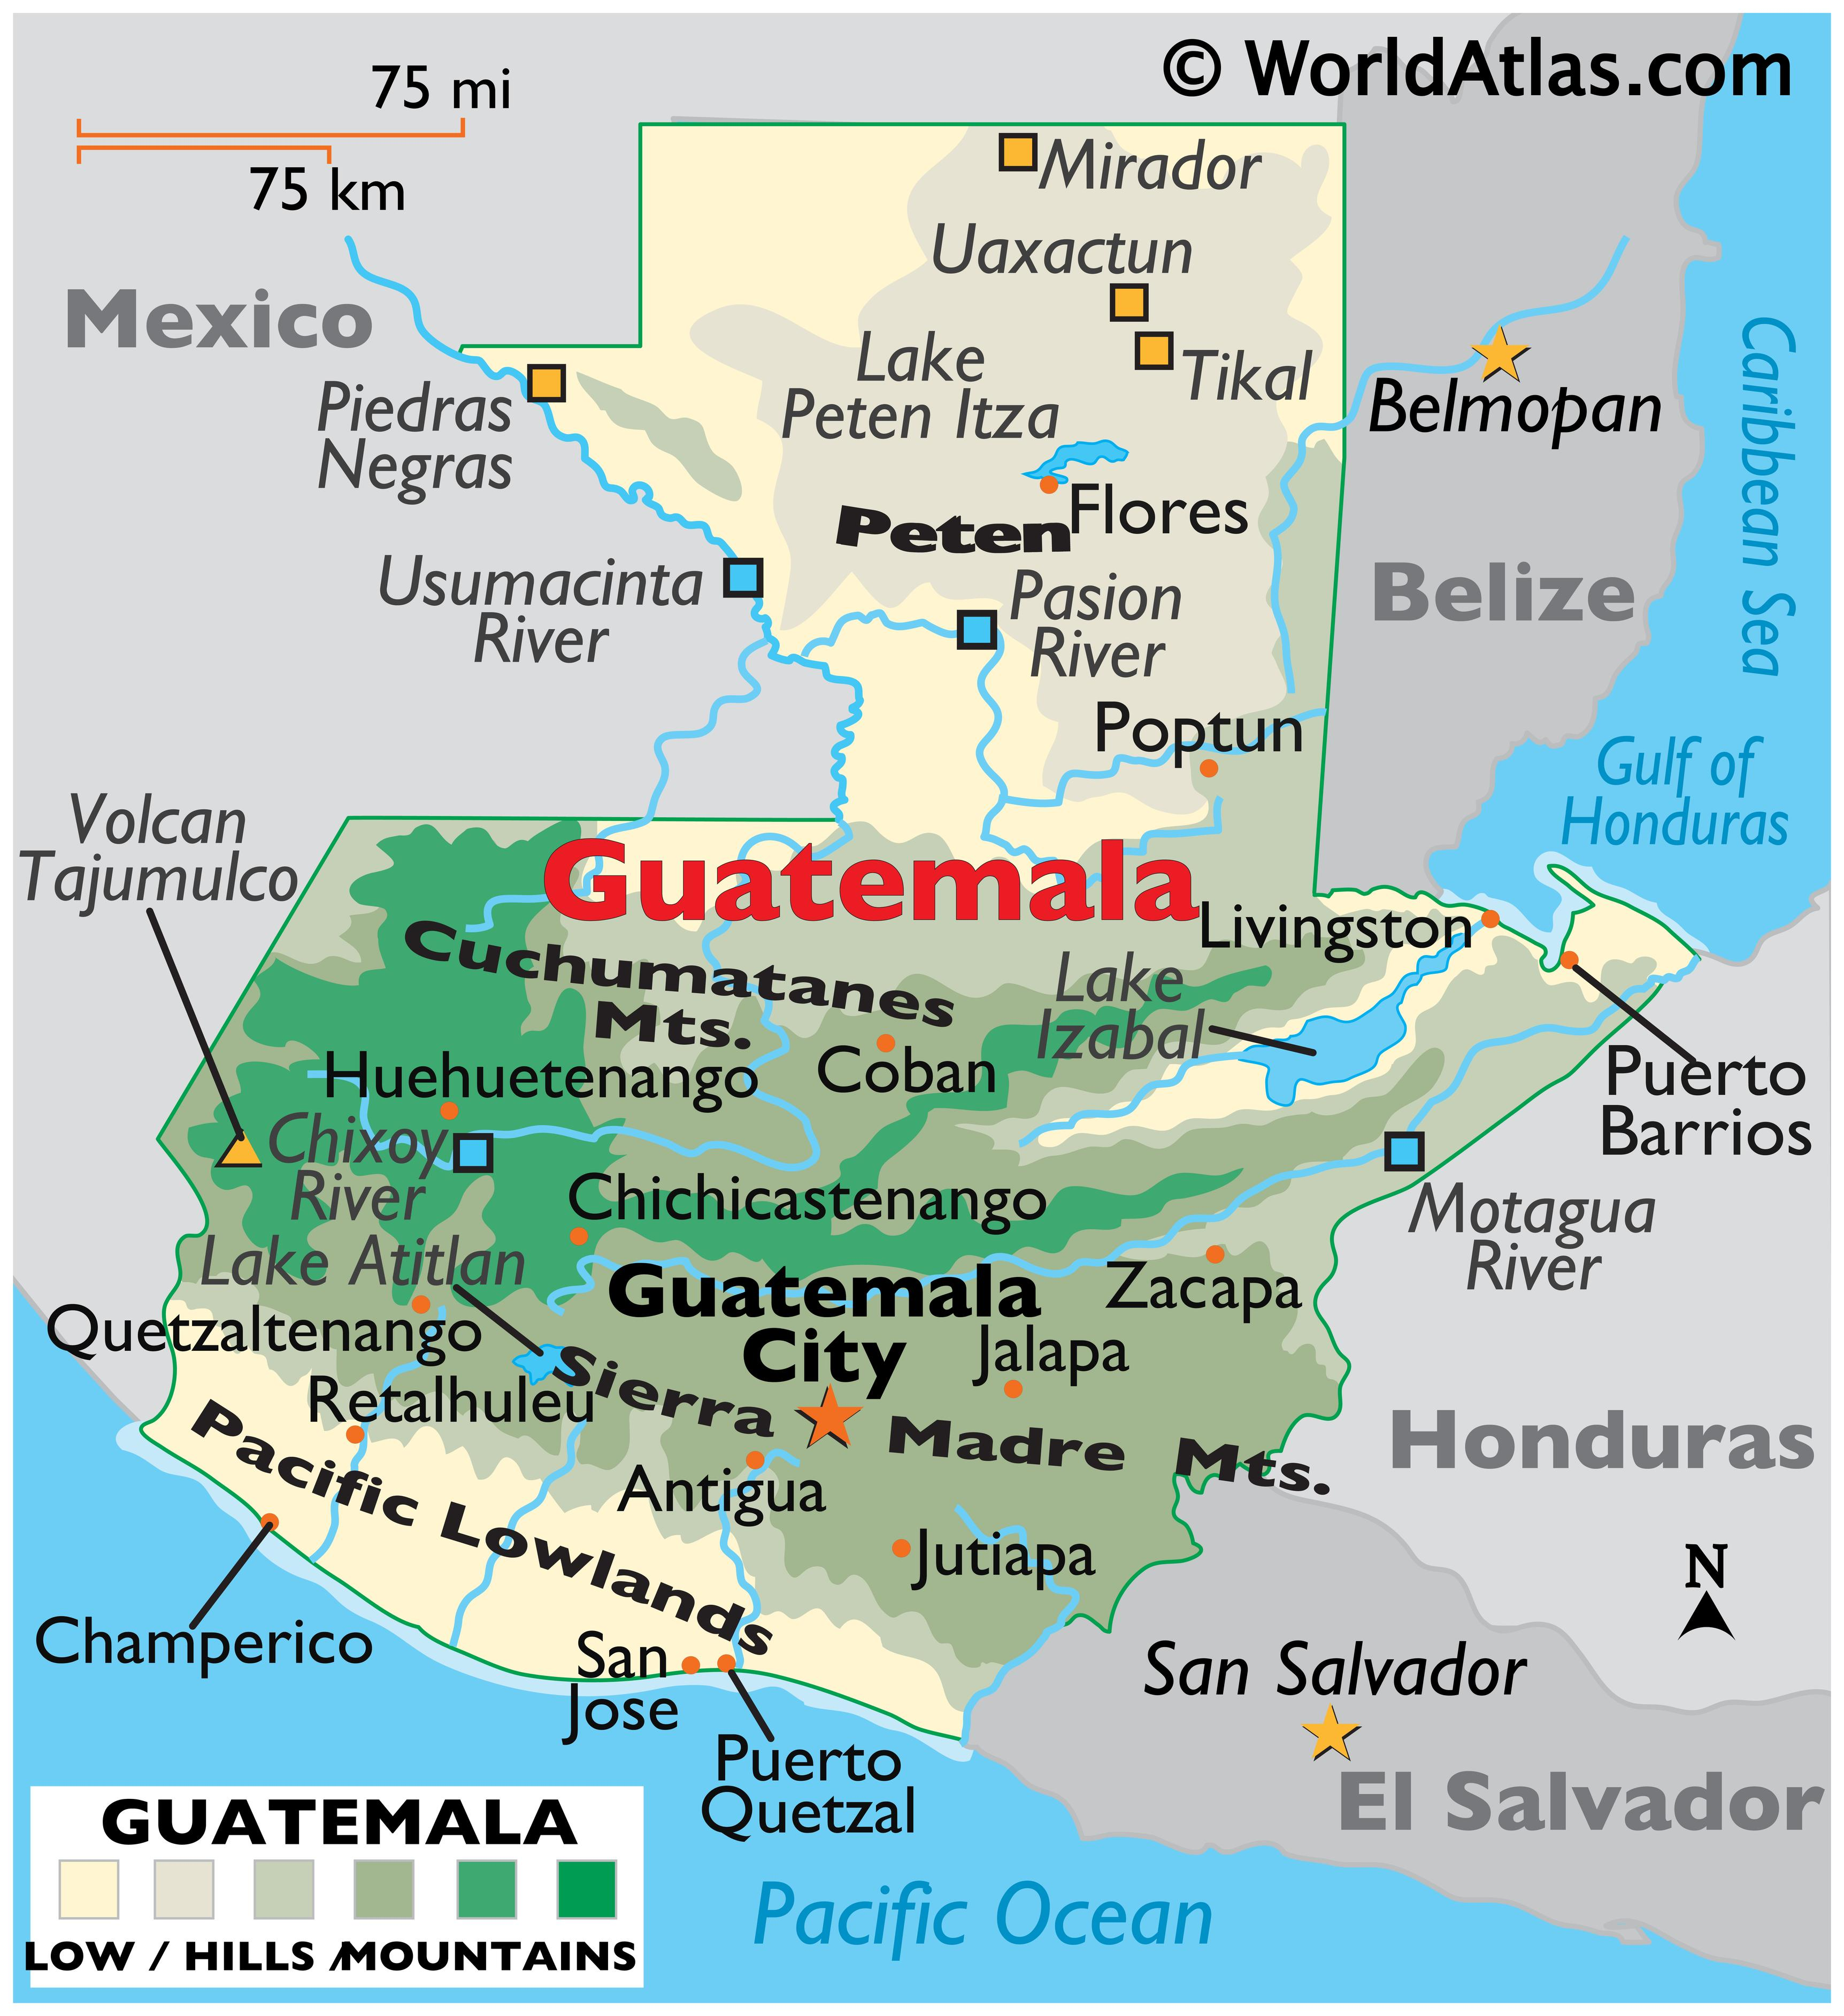 Physical Map of Guatemala showing terrain, major mountain ranges, highest point, rivers, Lake Izabal, the Peten region, important cities, international borders, etc.